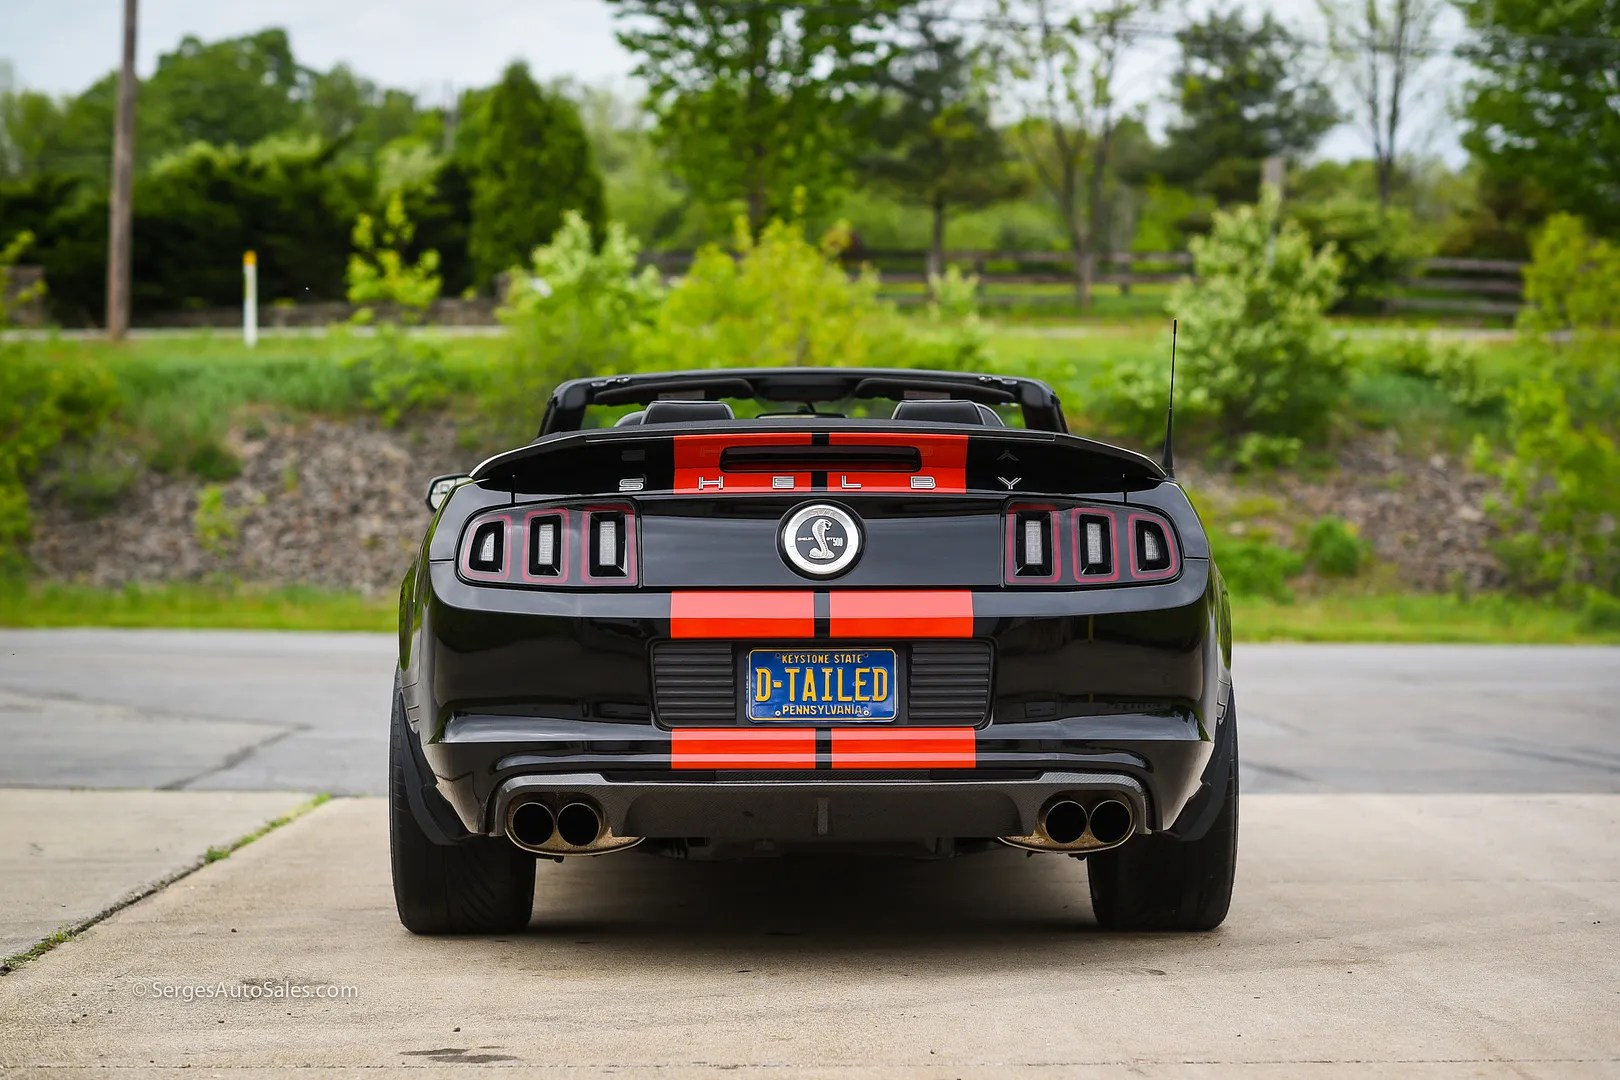 photo Serges-Auto-Sales-shelby-mustang-gt-for-sale-convertible-gt500-scranton-pa-46_zpsgpyzztyj.jpg